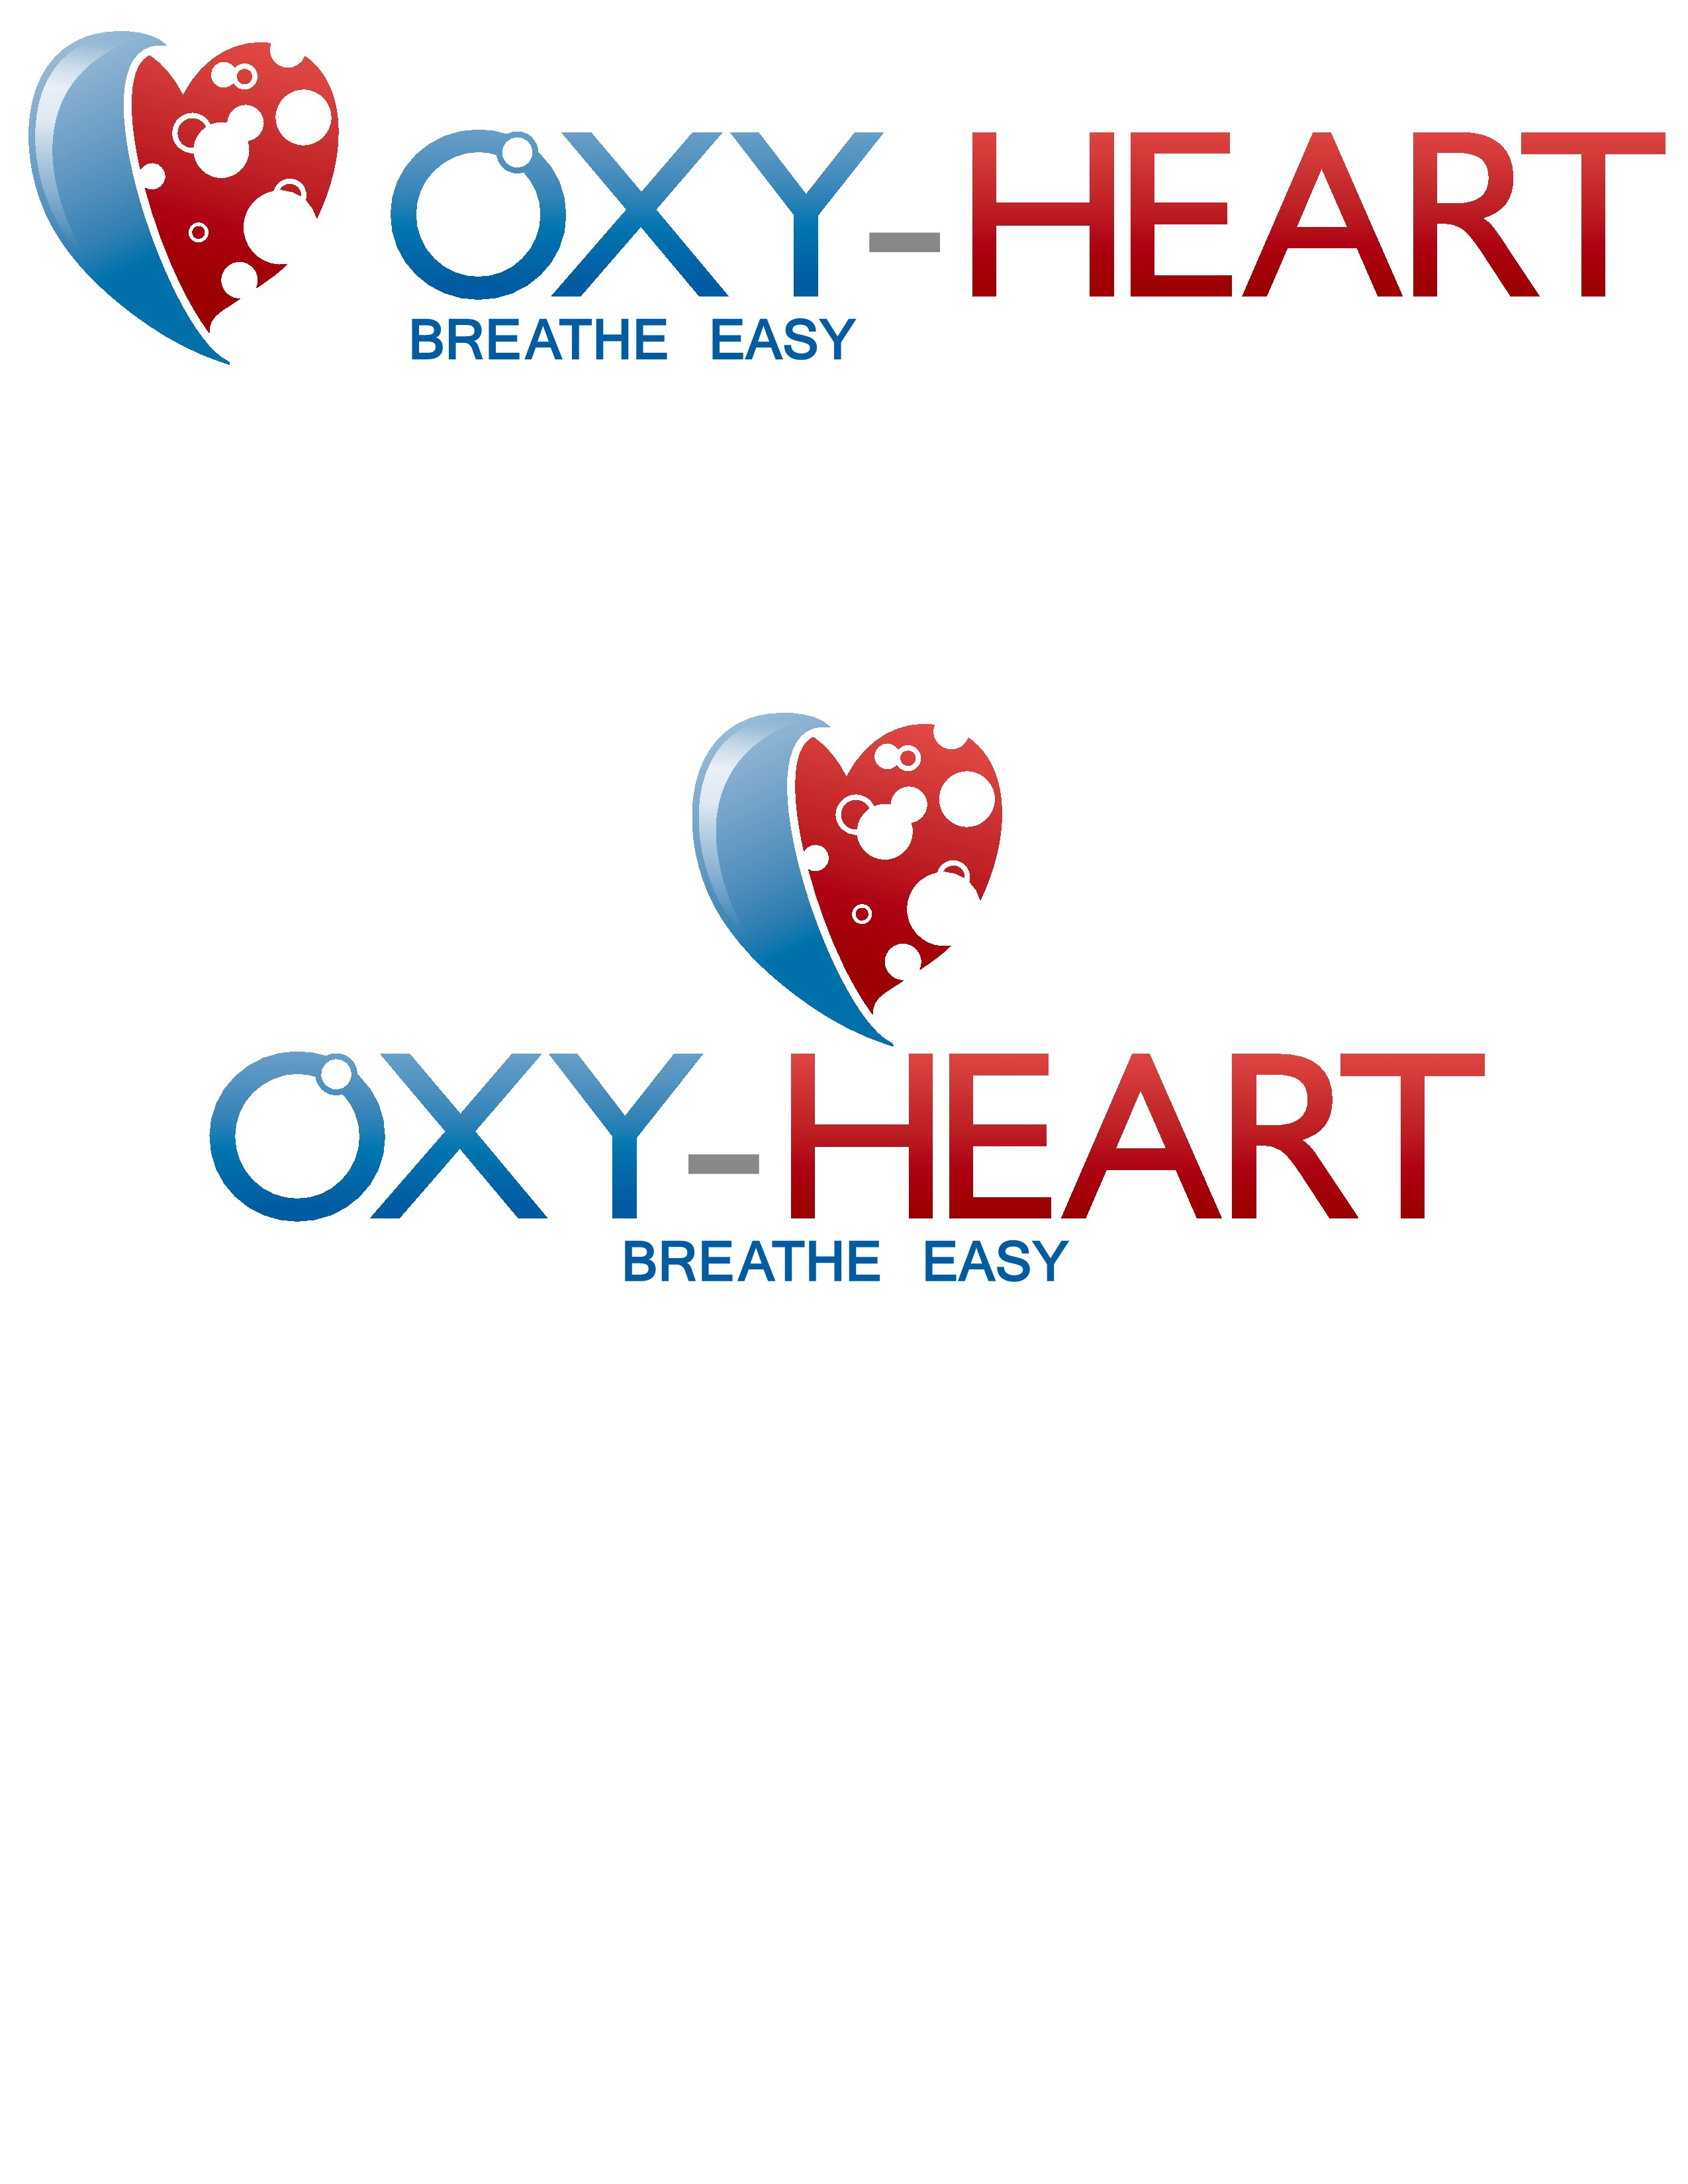 CREATE A DESIGN FOR PROVIDING OXYGEN TO THE HEART FOR OXY-HEART